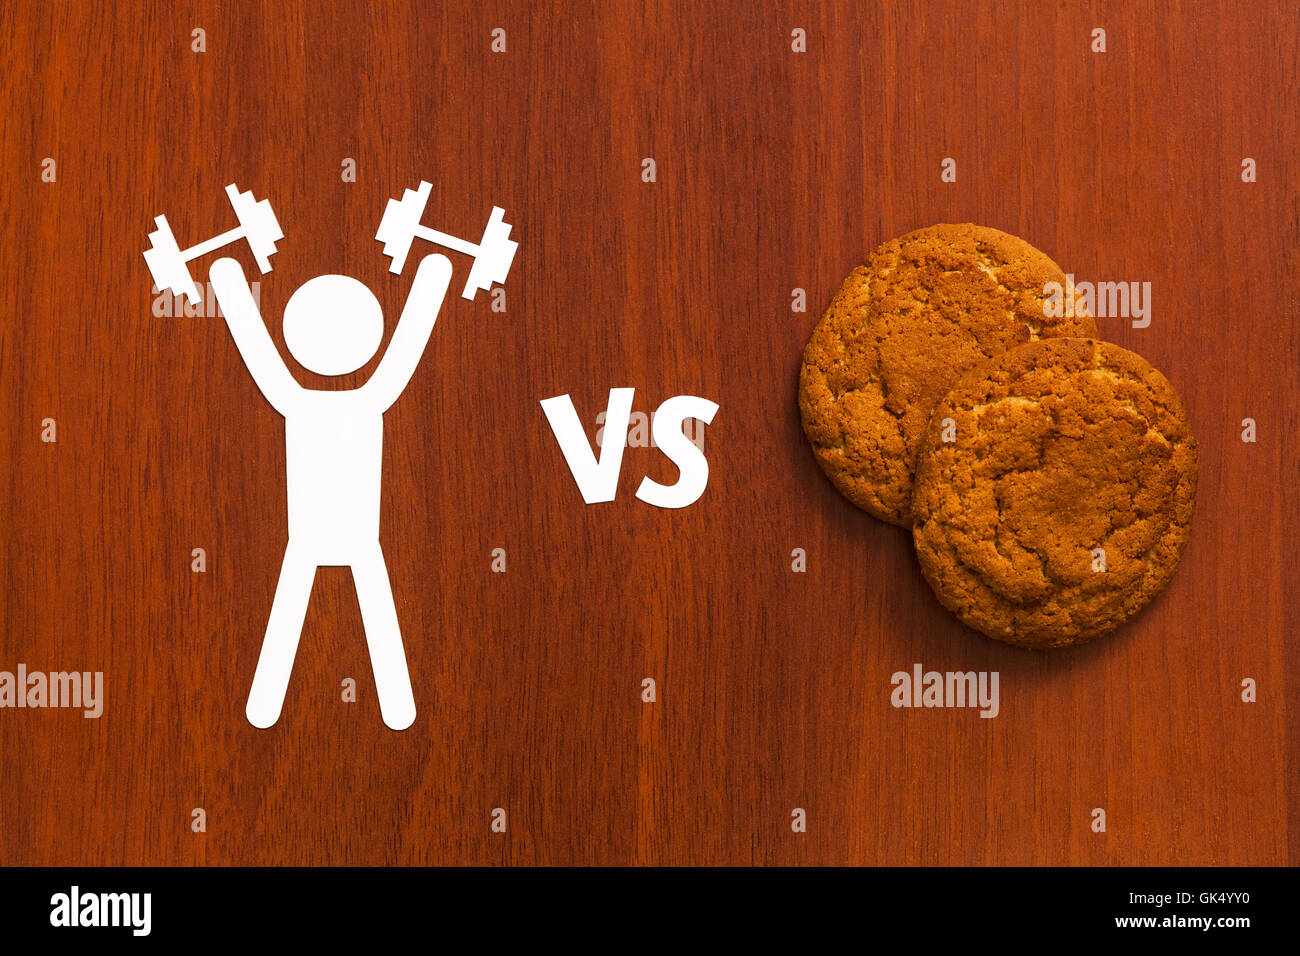 Paper man with dumbbells vs unhealthy food. Abstract conceptual image - Stock Image